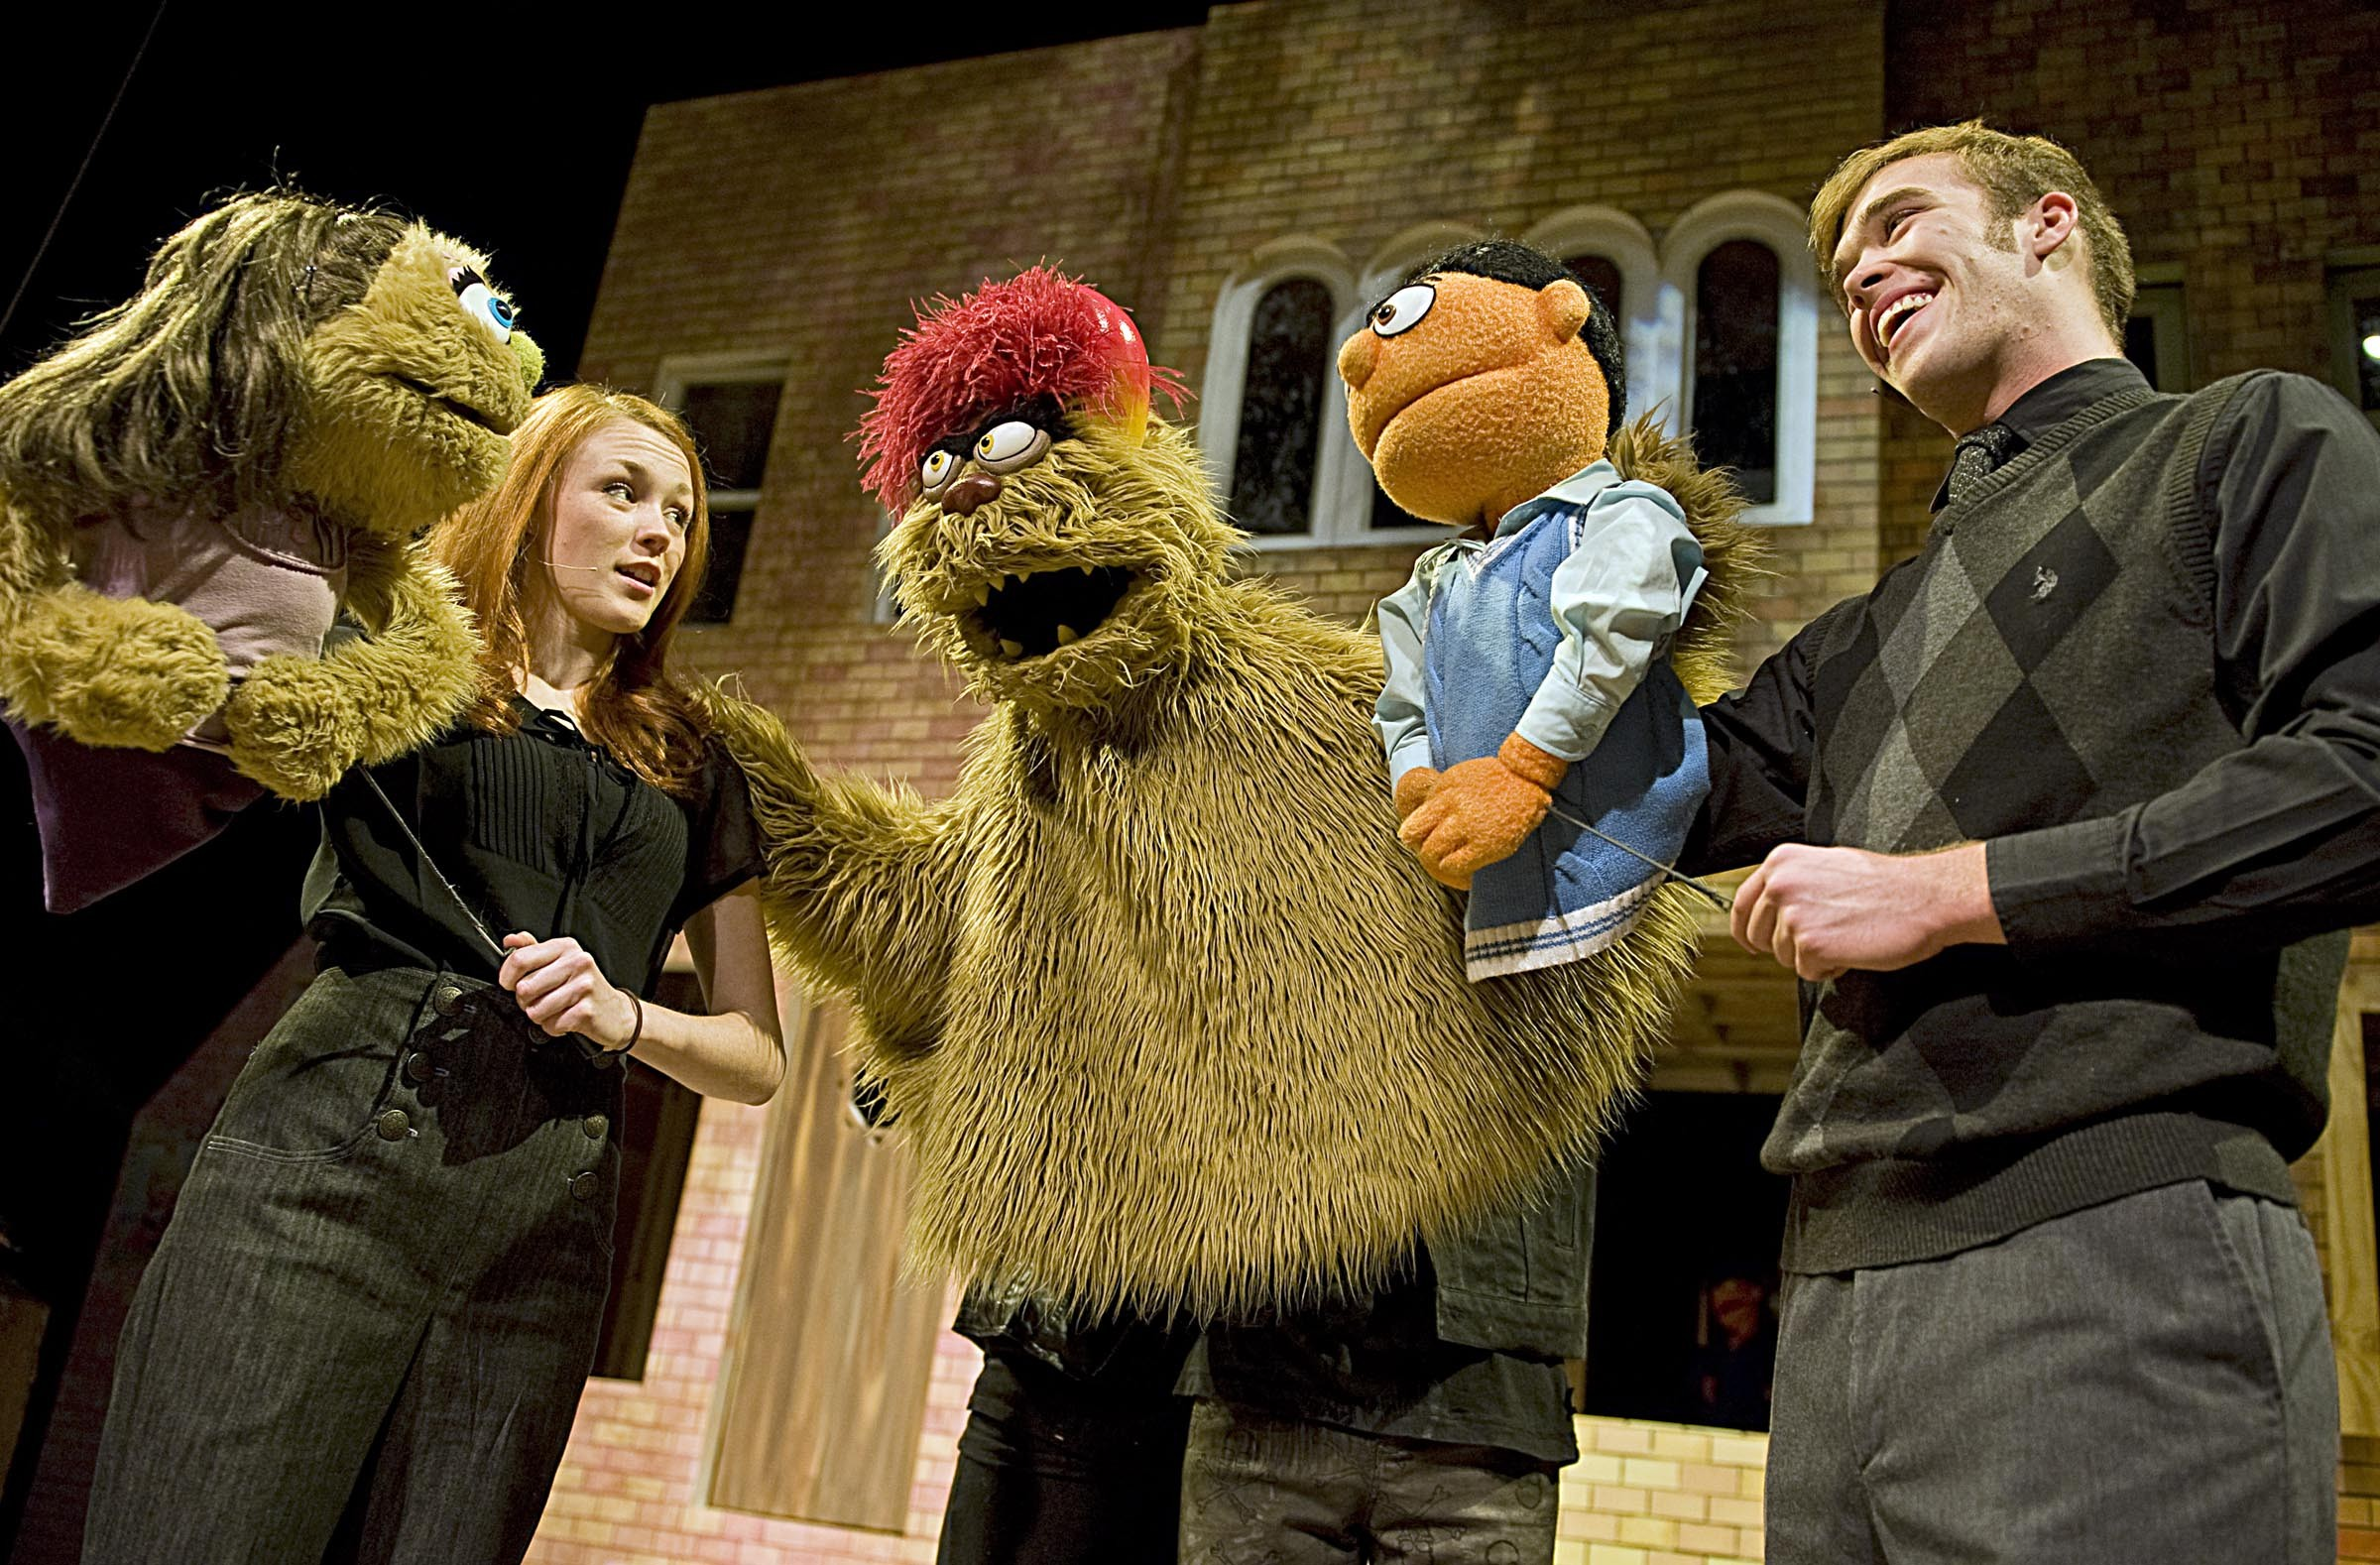 """Don't expect any alphabet songs in Theatre VCU's production of """"Avenue Q."""" From left: Kate Monster, operated by Maggie Horan; Trekkie Monster, played by Mahlon Raoufi; and Princeton, operated by Shane Moran. - ASH DANIEL"""